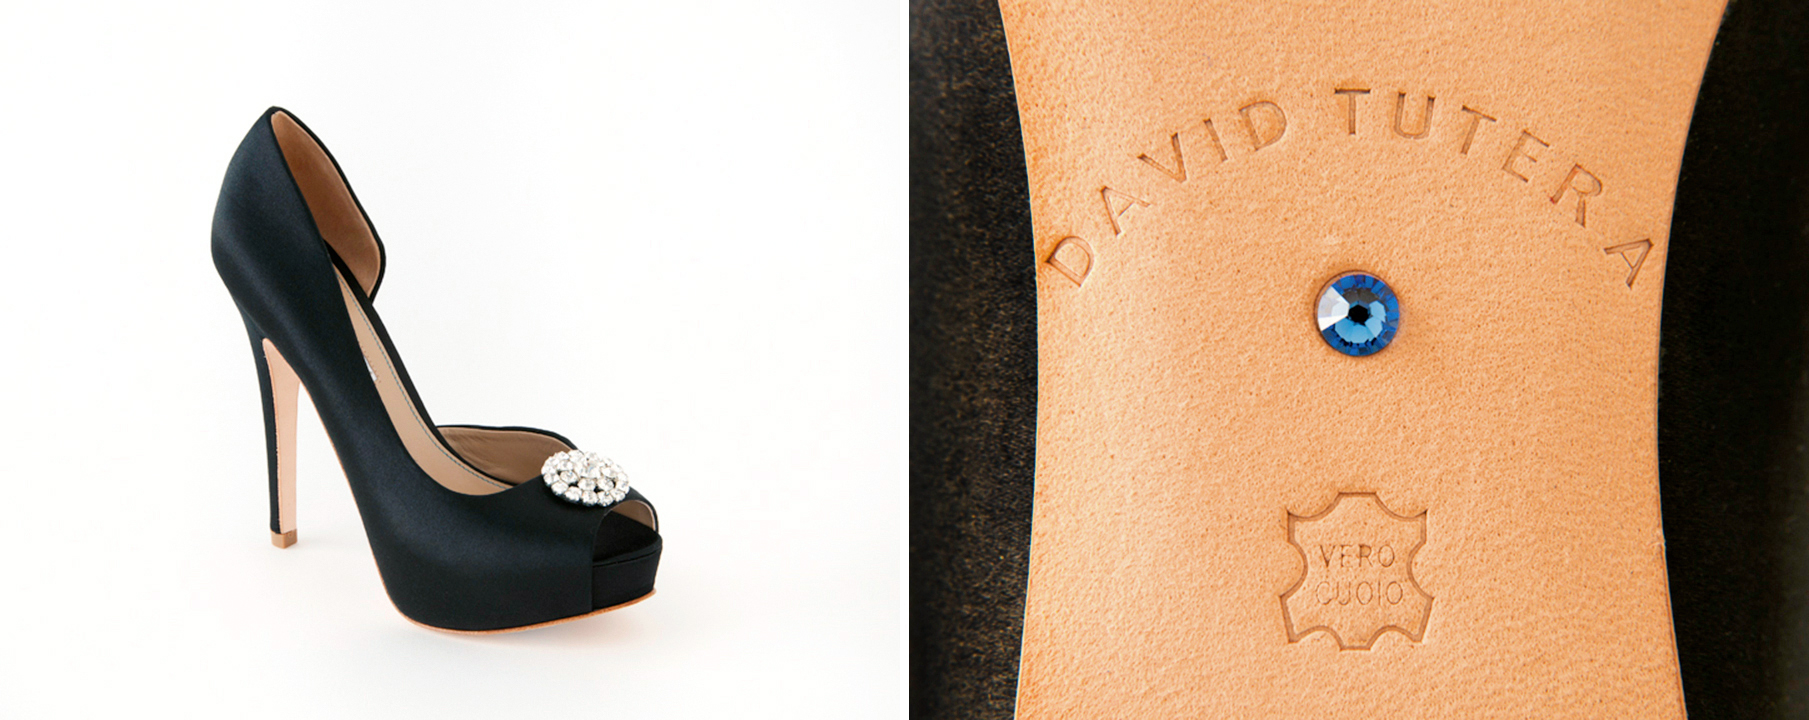 DavidTutera_Shoe_Black_wJewelDetail